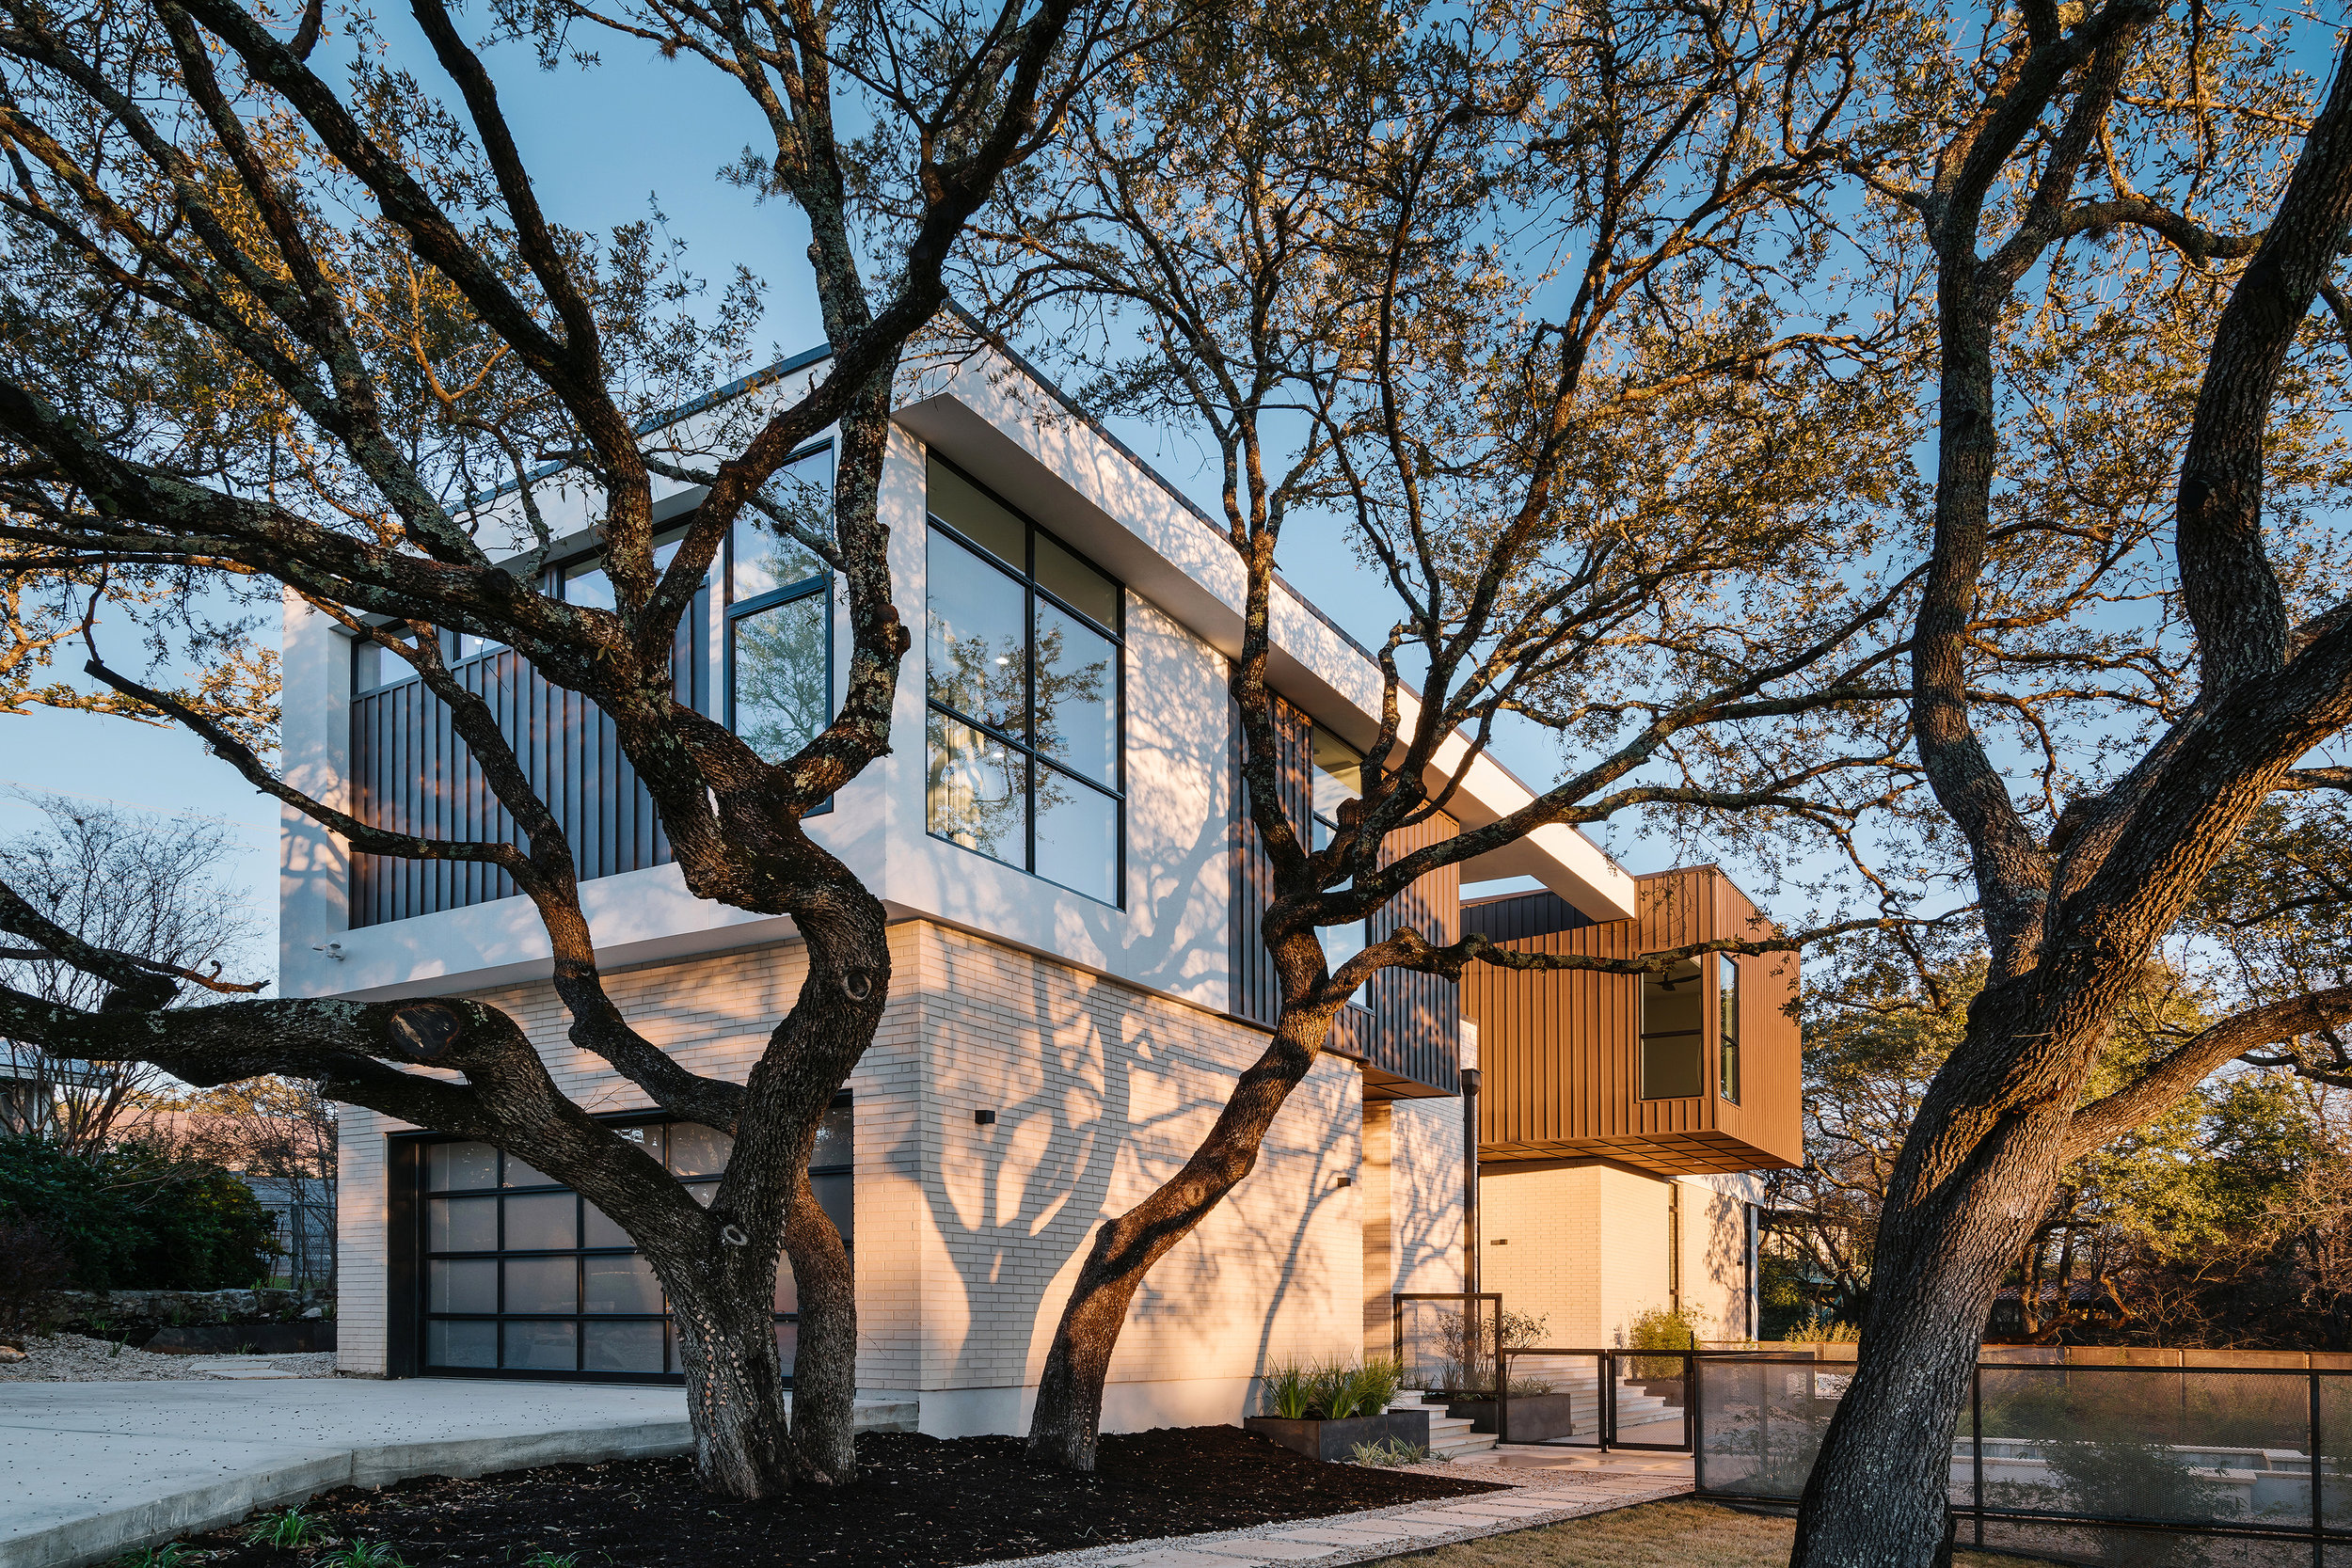 4 Allotted Space House by Matt Fajkus Architecture. Photo by Chase Daniel.jpg